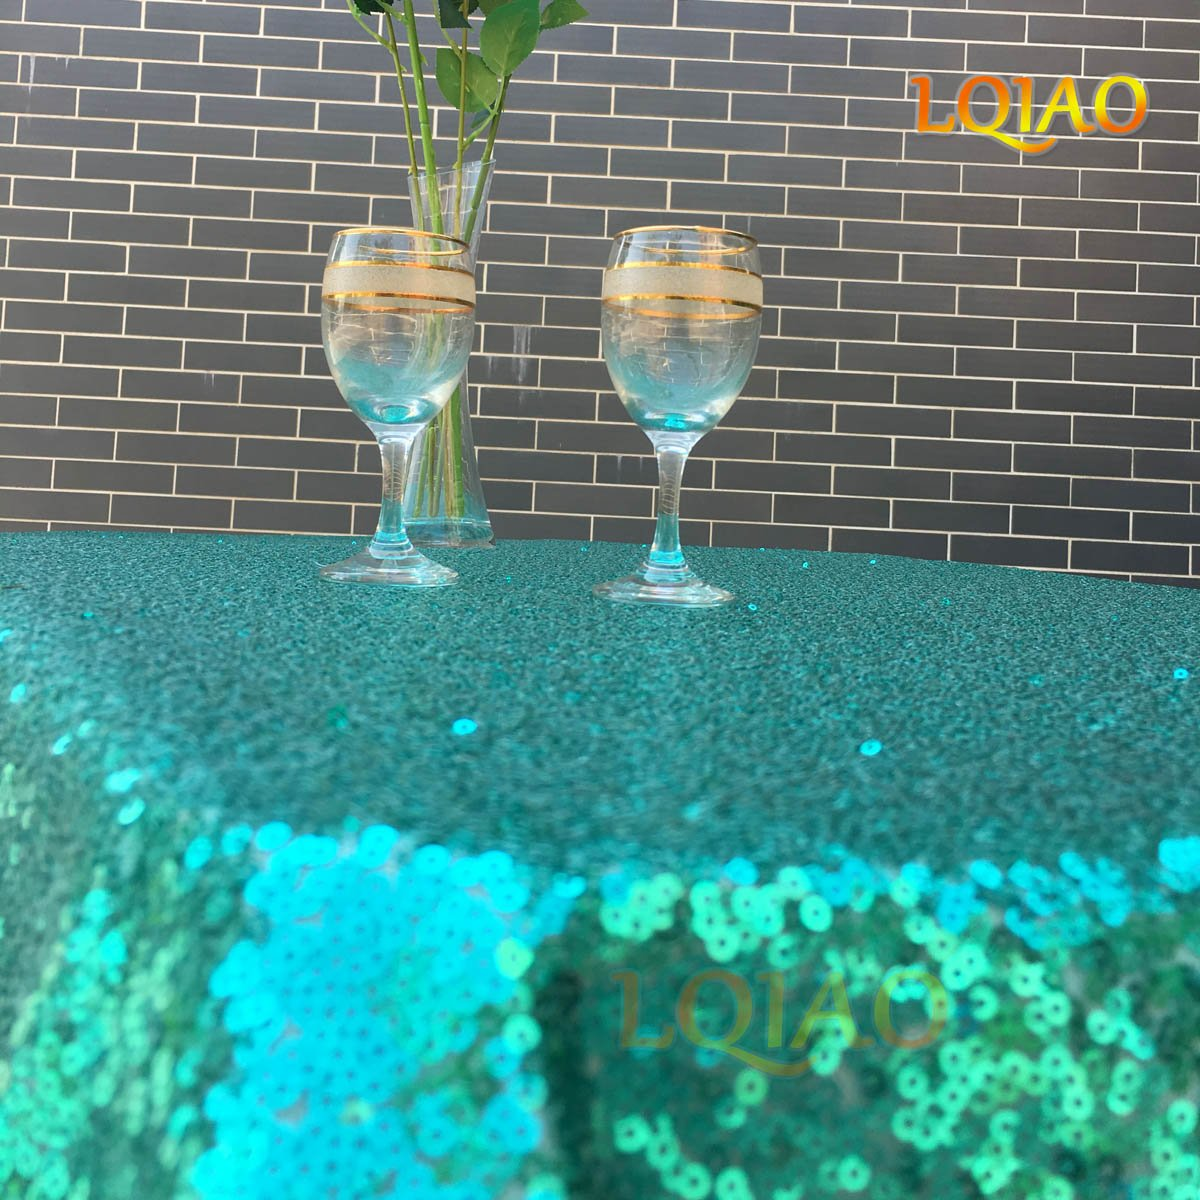 Cheapest 10PCS 120inch Round Sequin Tablecloth, Emerald Green Table Cloth Sparkly Wedding Tablecloth Evening Party Decoration by LQIAO